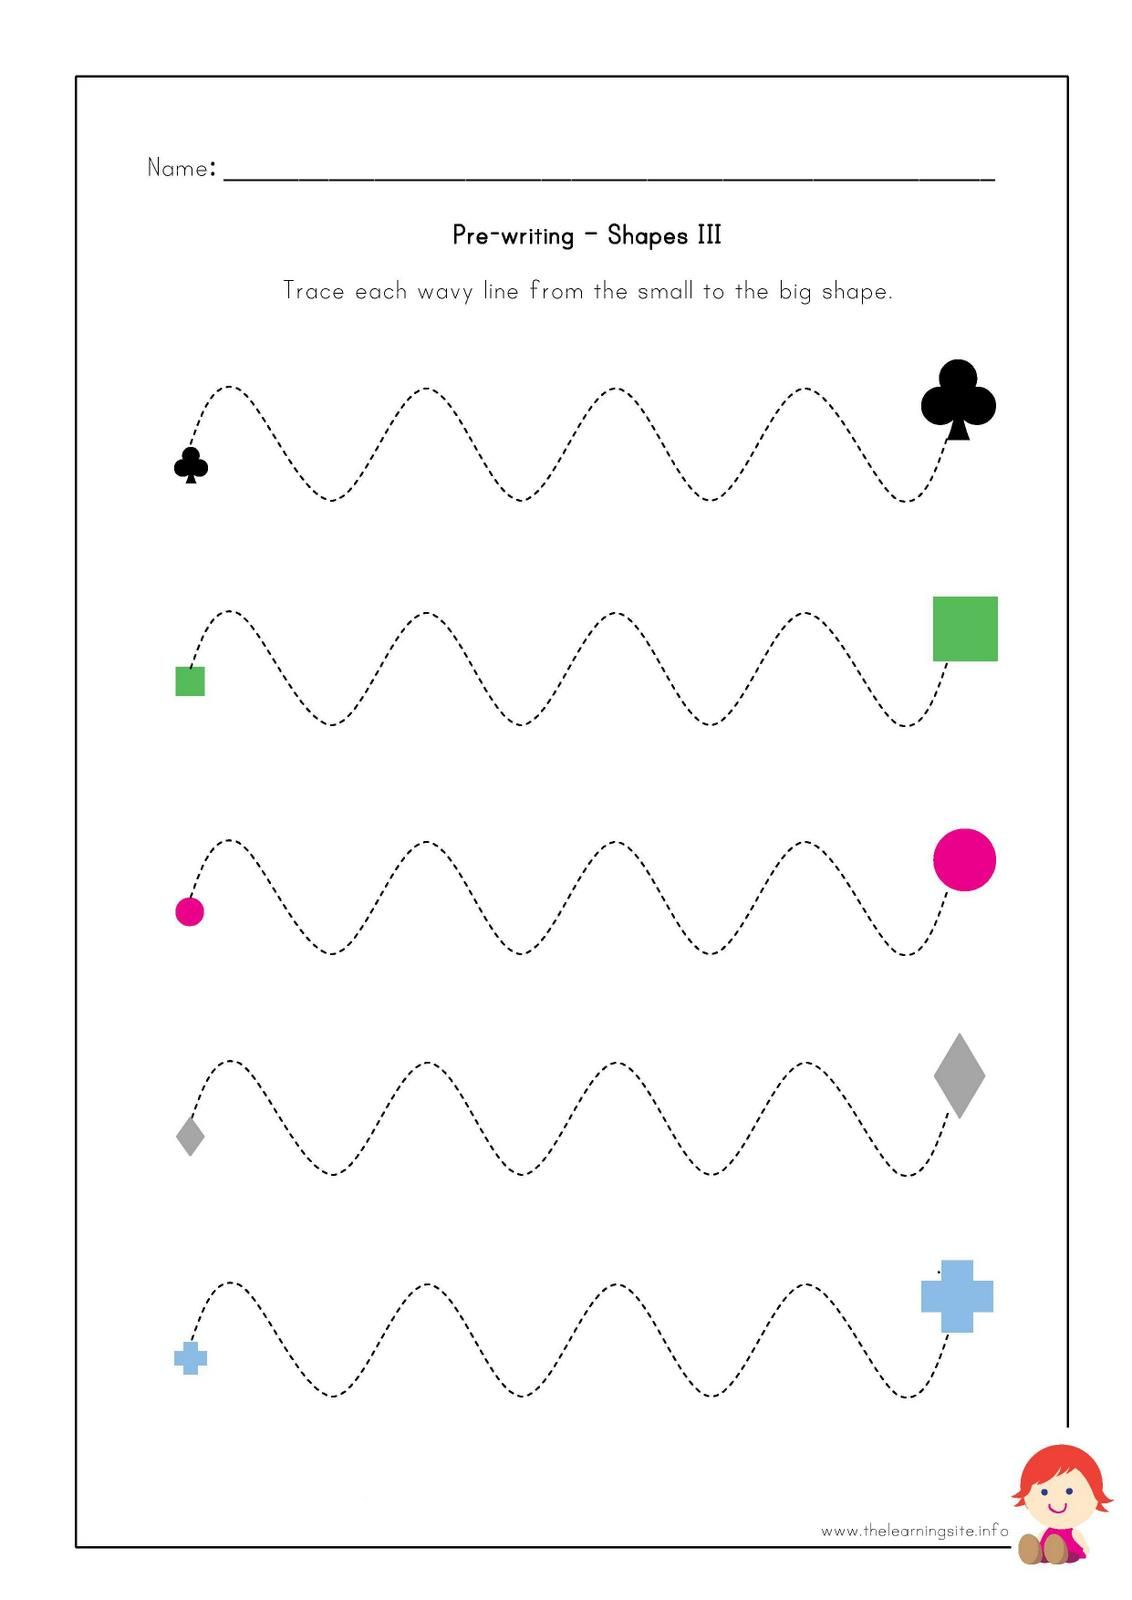 Printables Writing Worksheets For Preschoolers 1000 images about pre writing on pinterest activities free printable worksheets and straight lines